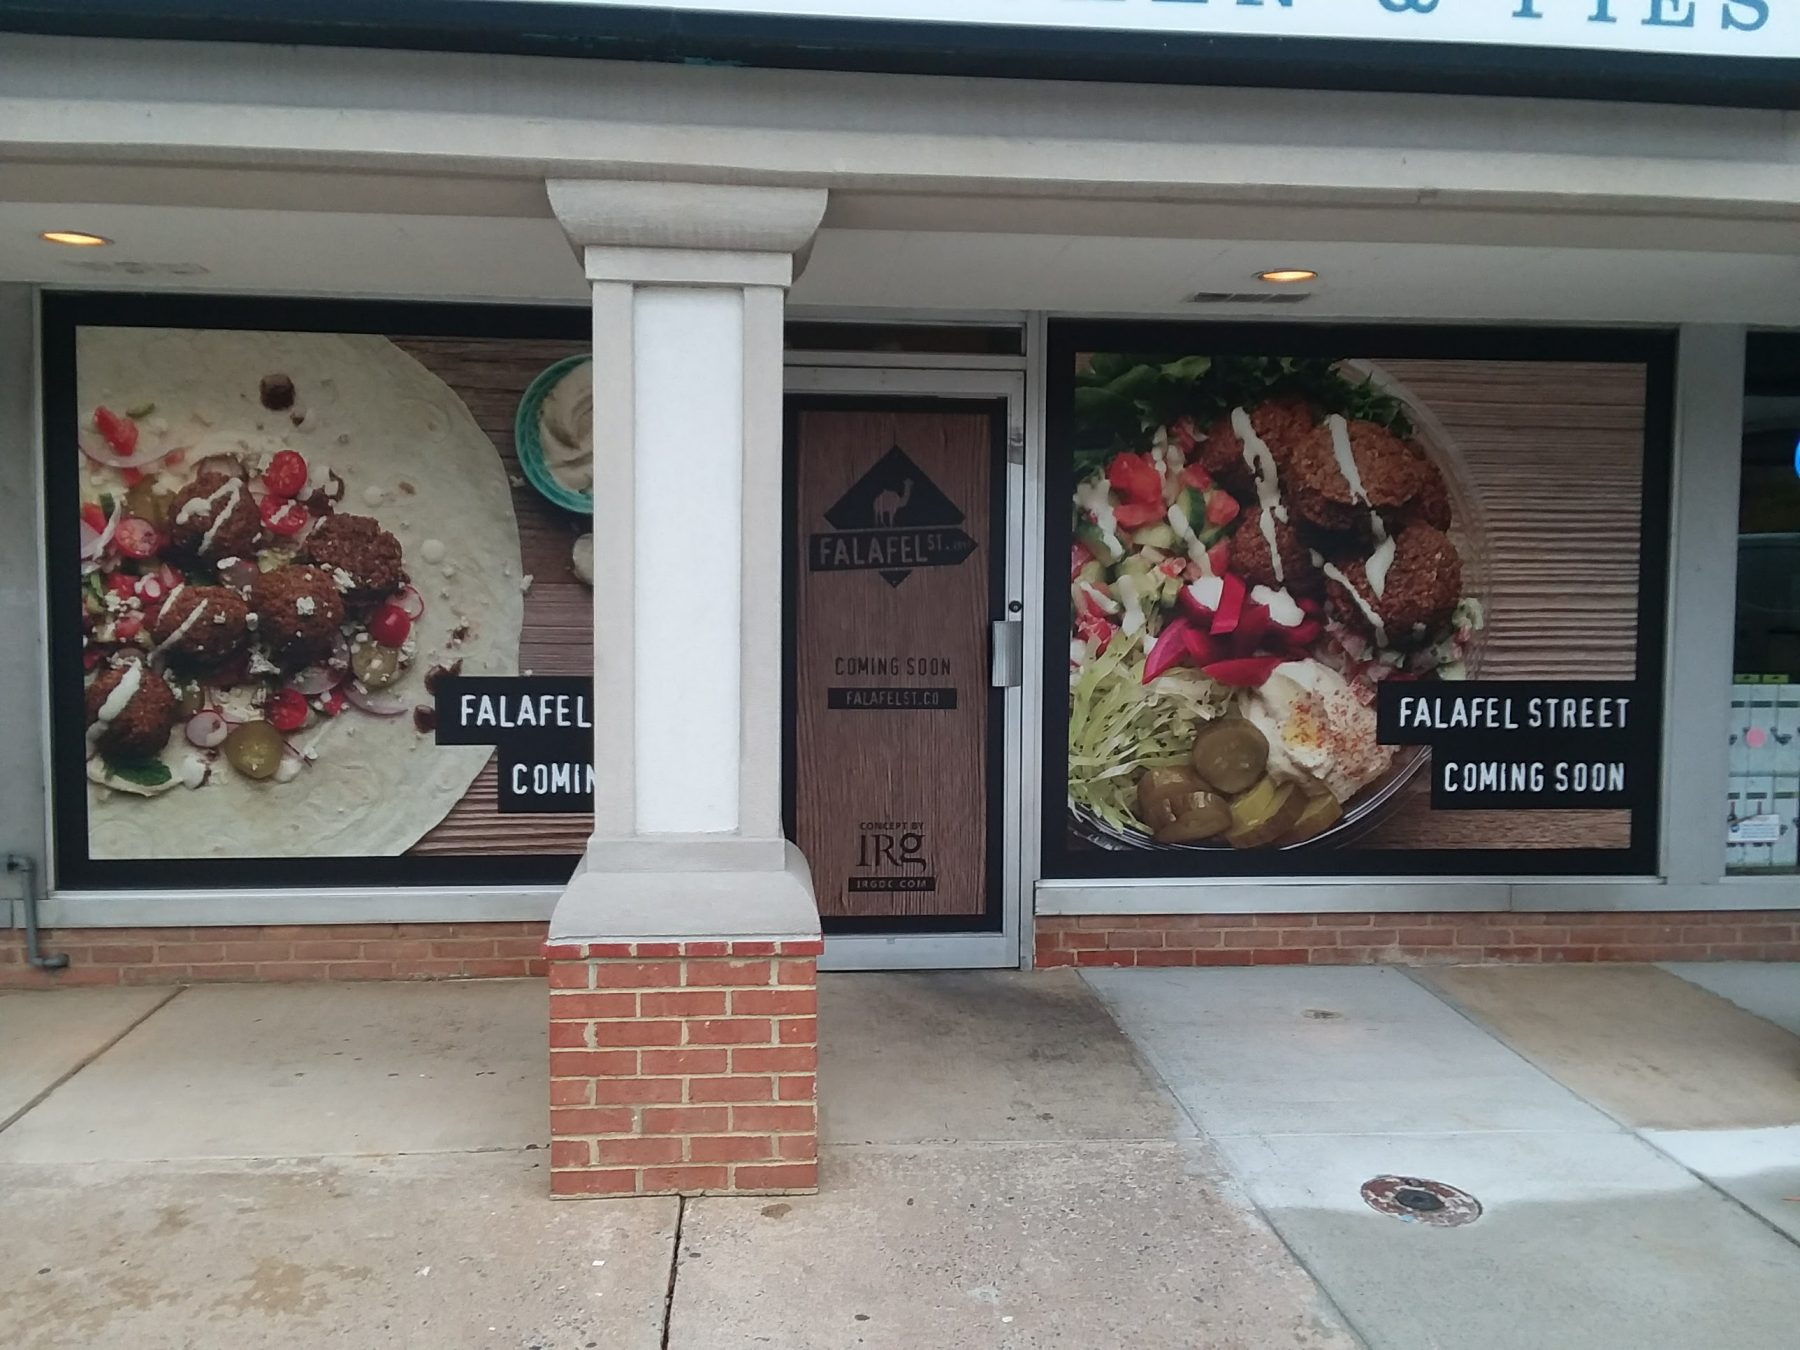 Commercial Graphics Gallery